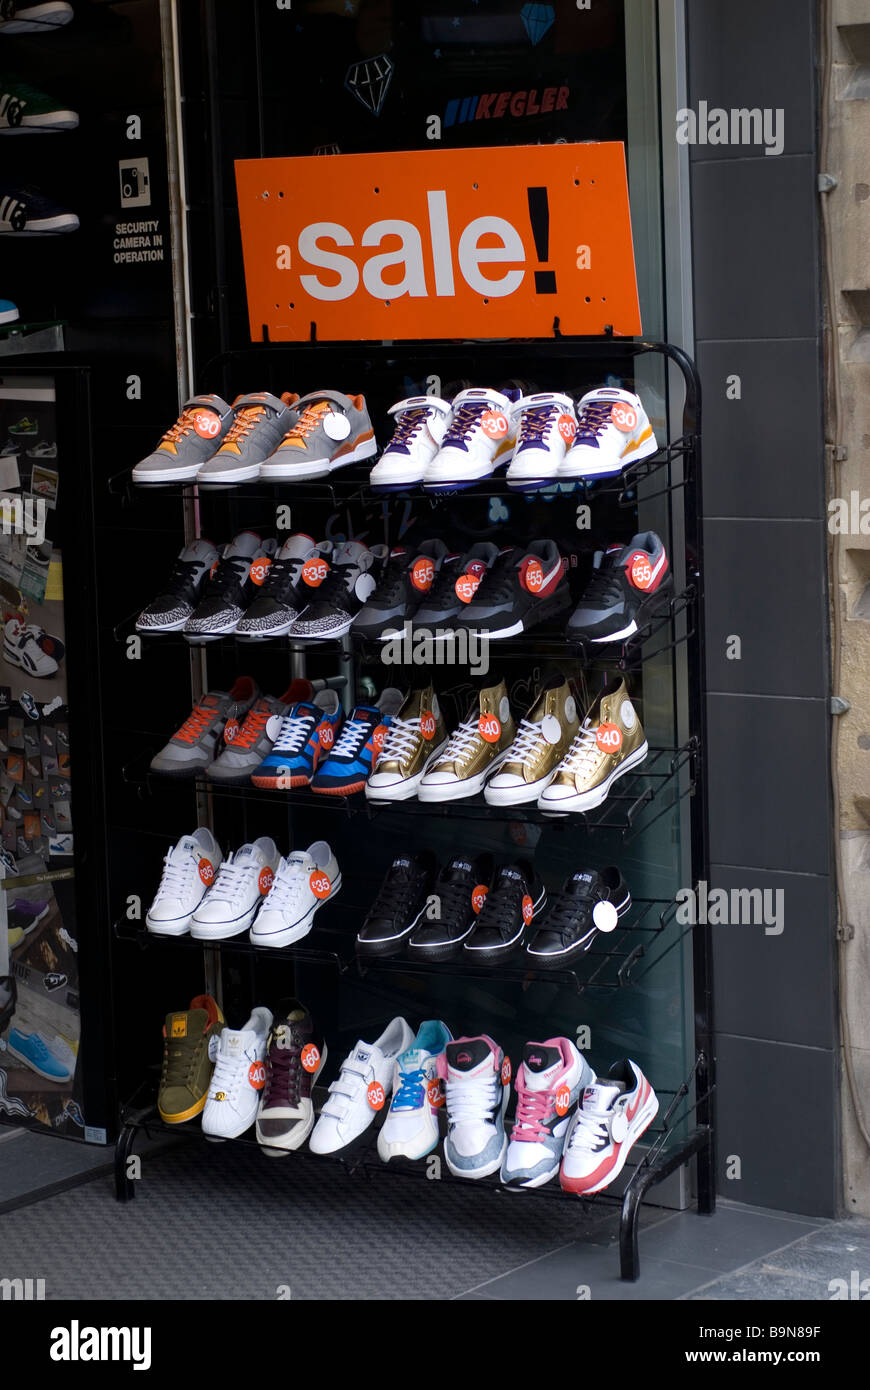 Shoes on sale stand outside shop in Manchester city centre UK - Stock Image